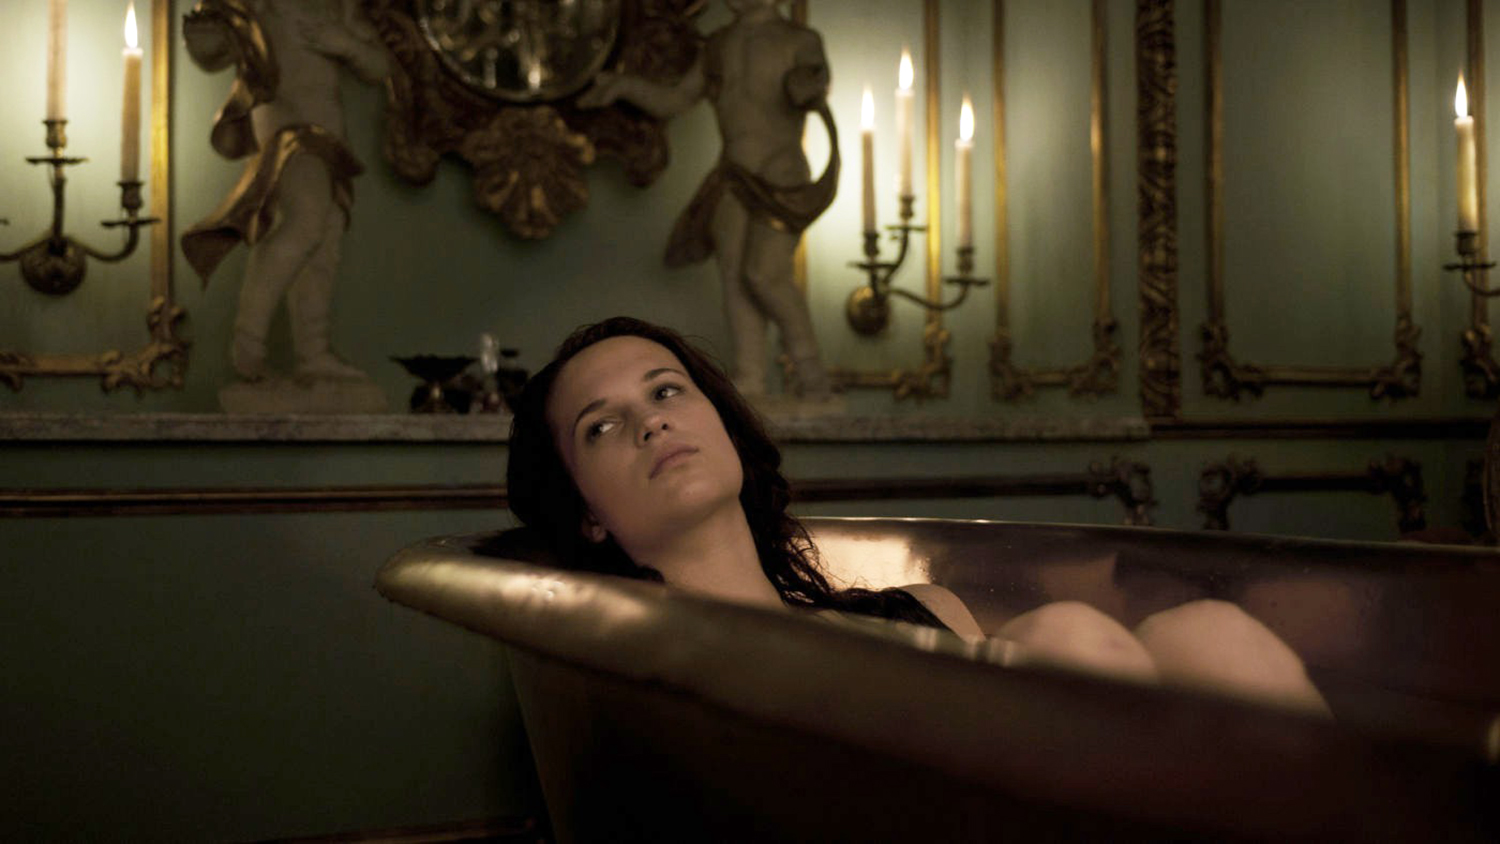 Erotic Foreign Films - A Royal Affair, in the bathtub